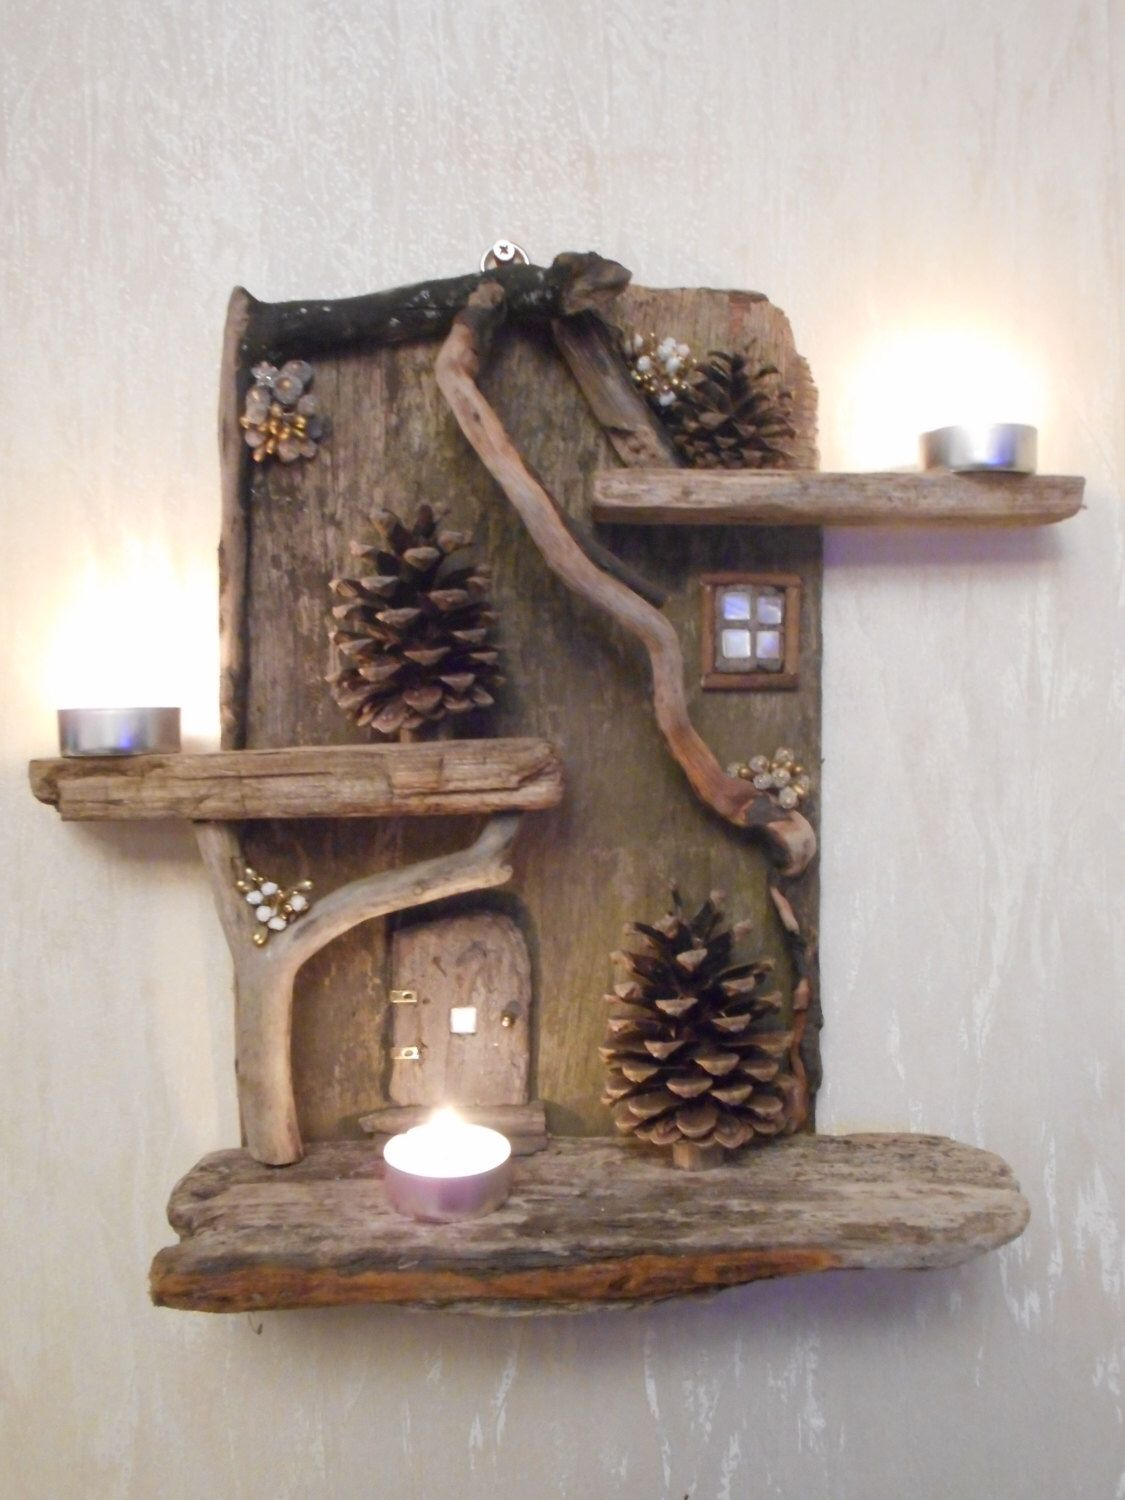 Zelfmaak Ideetjes Hout Beautiful Driftwood Fairy House Candle Display By